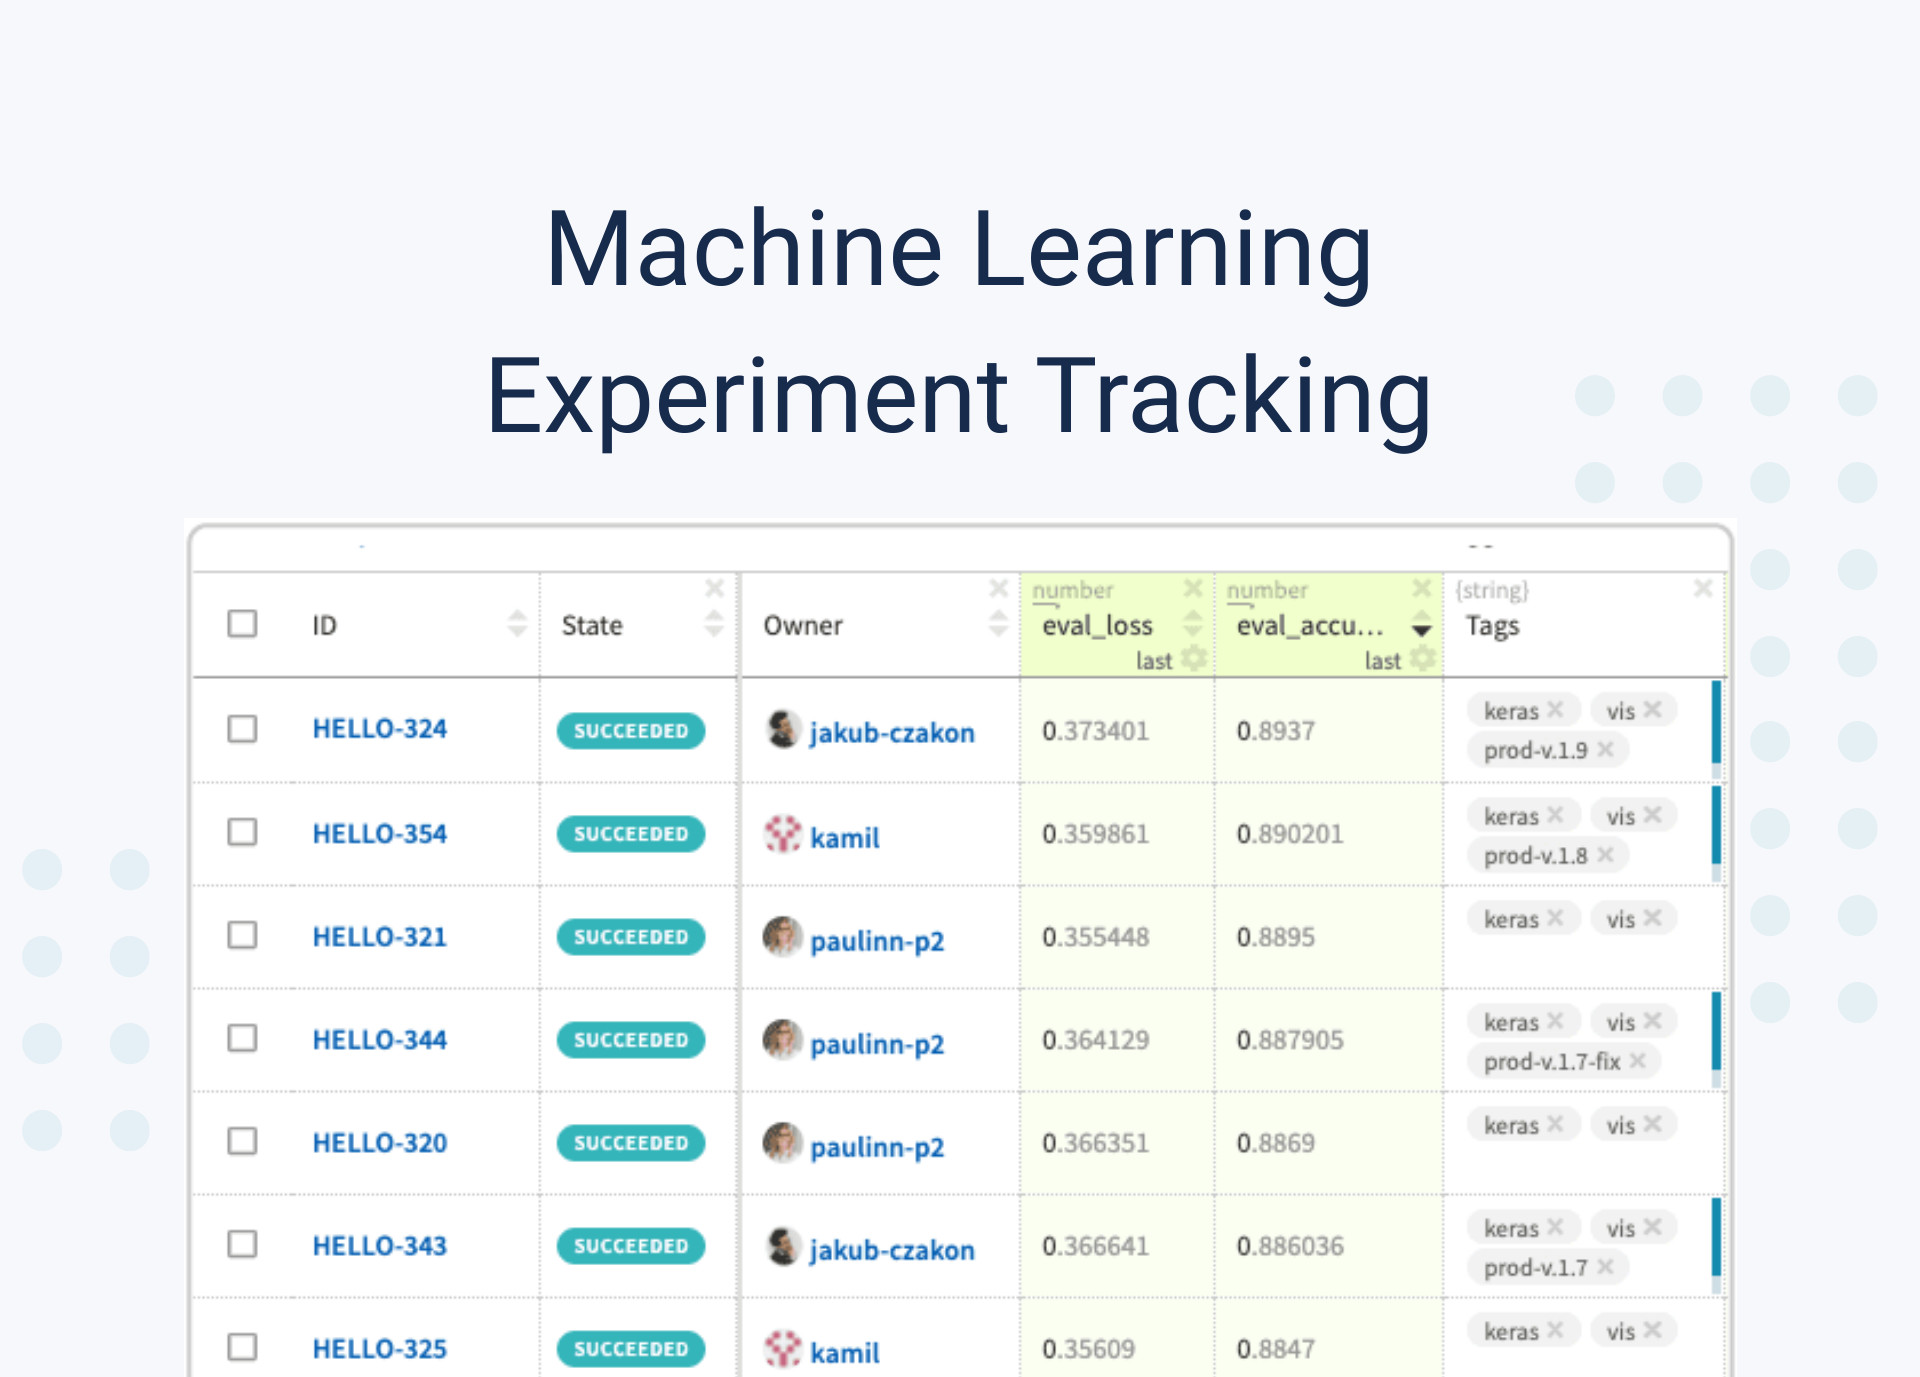 ML Experiment Tracking: What It Is, Why It Matters, and How to Implement It